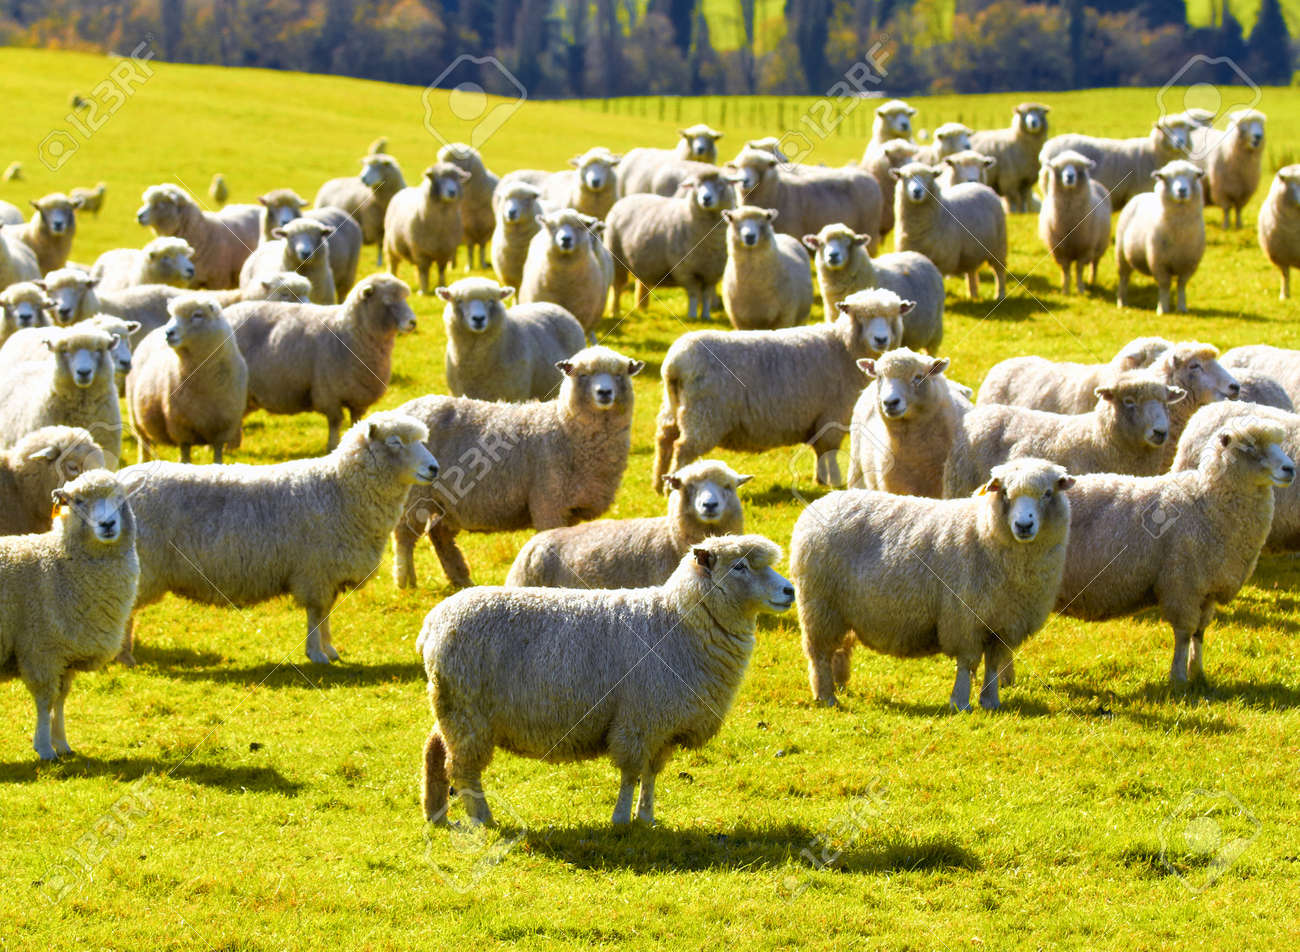 A photo of a herd of sheep in New Zealand - 10720606